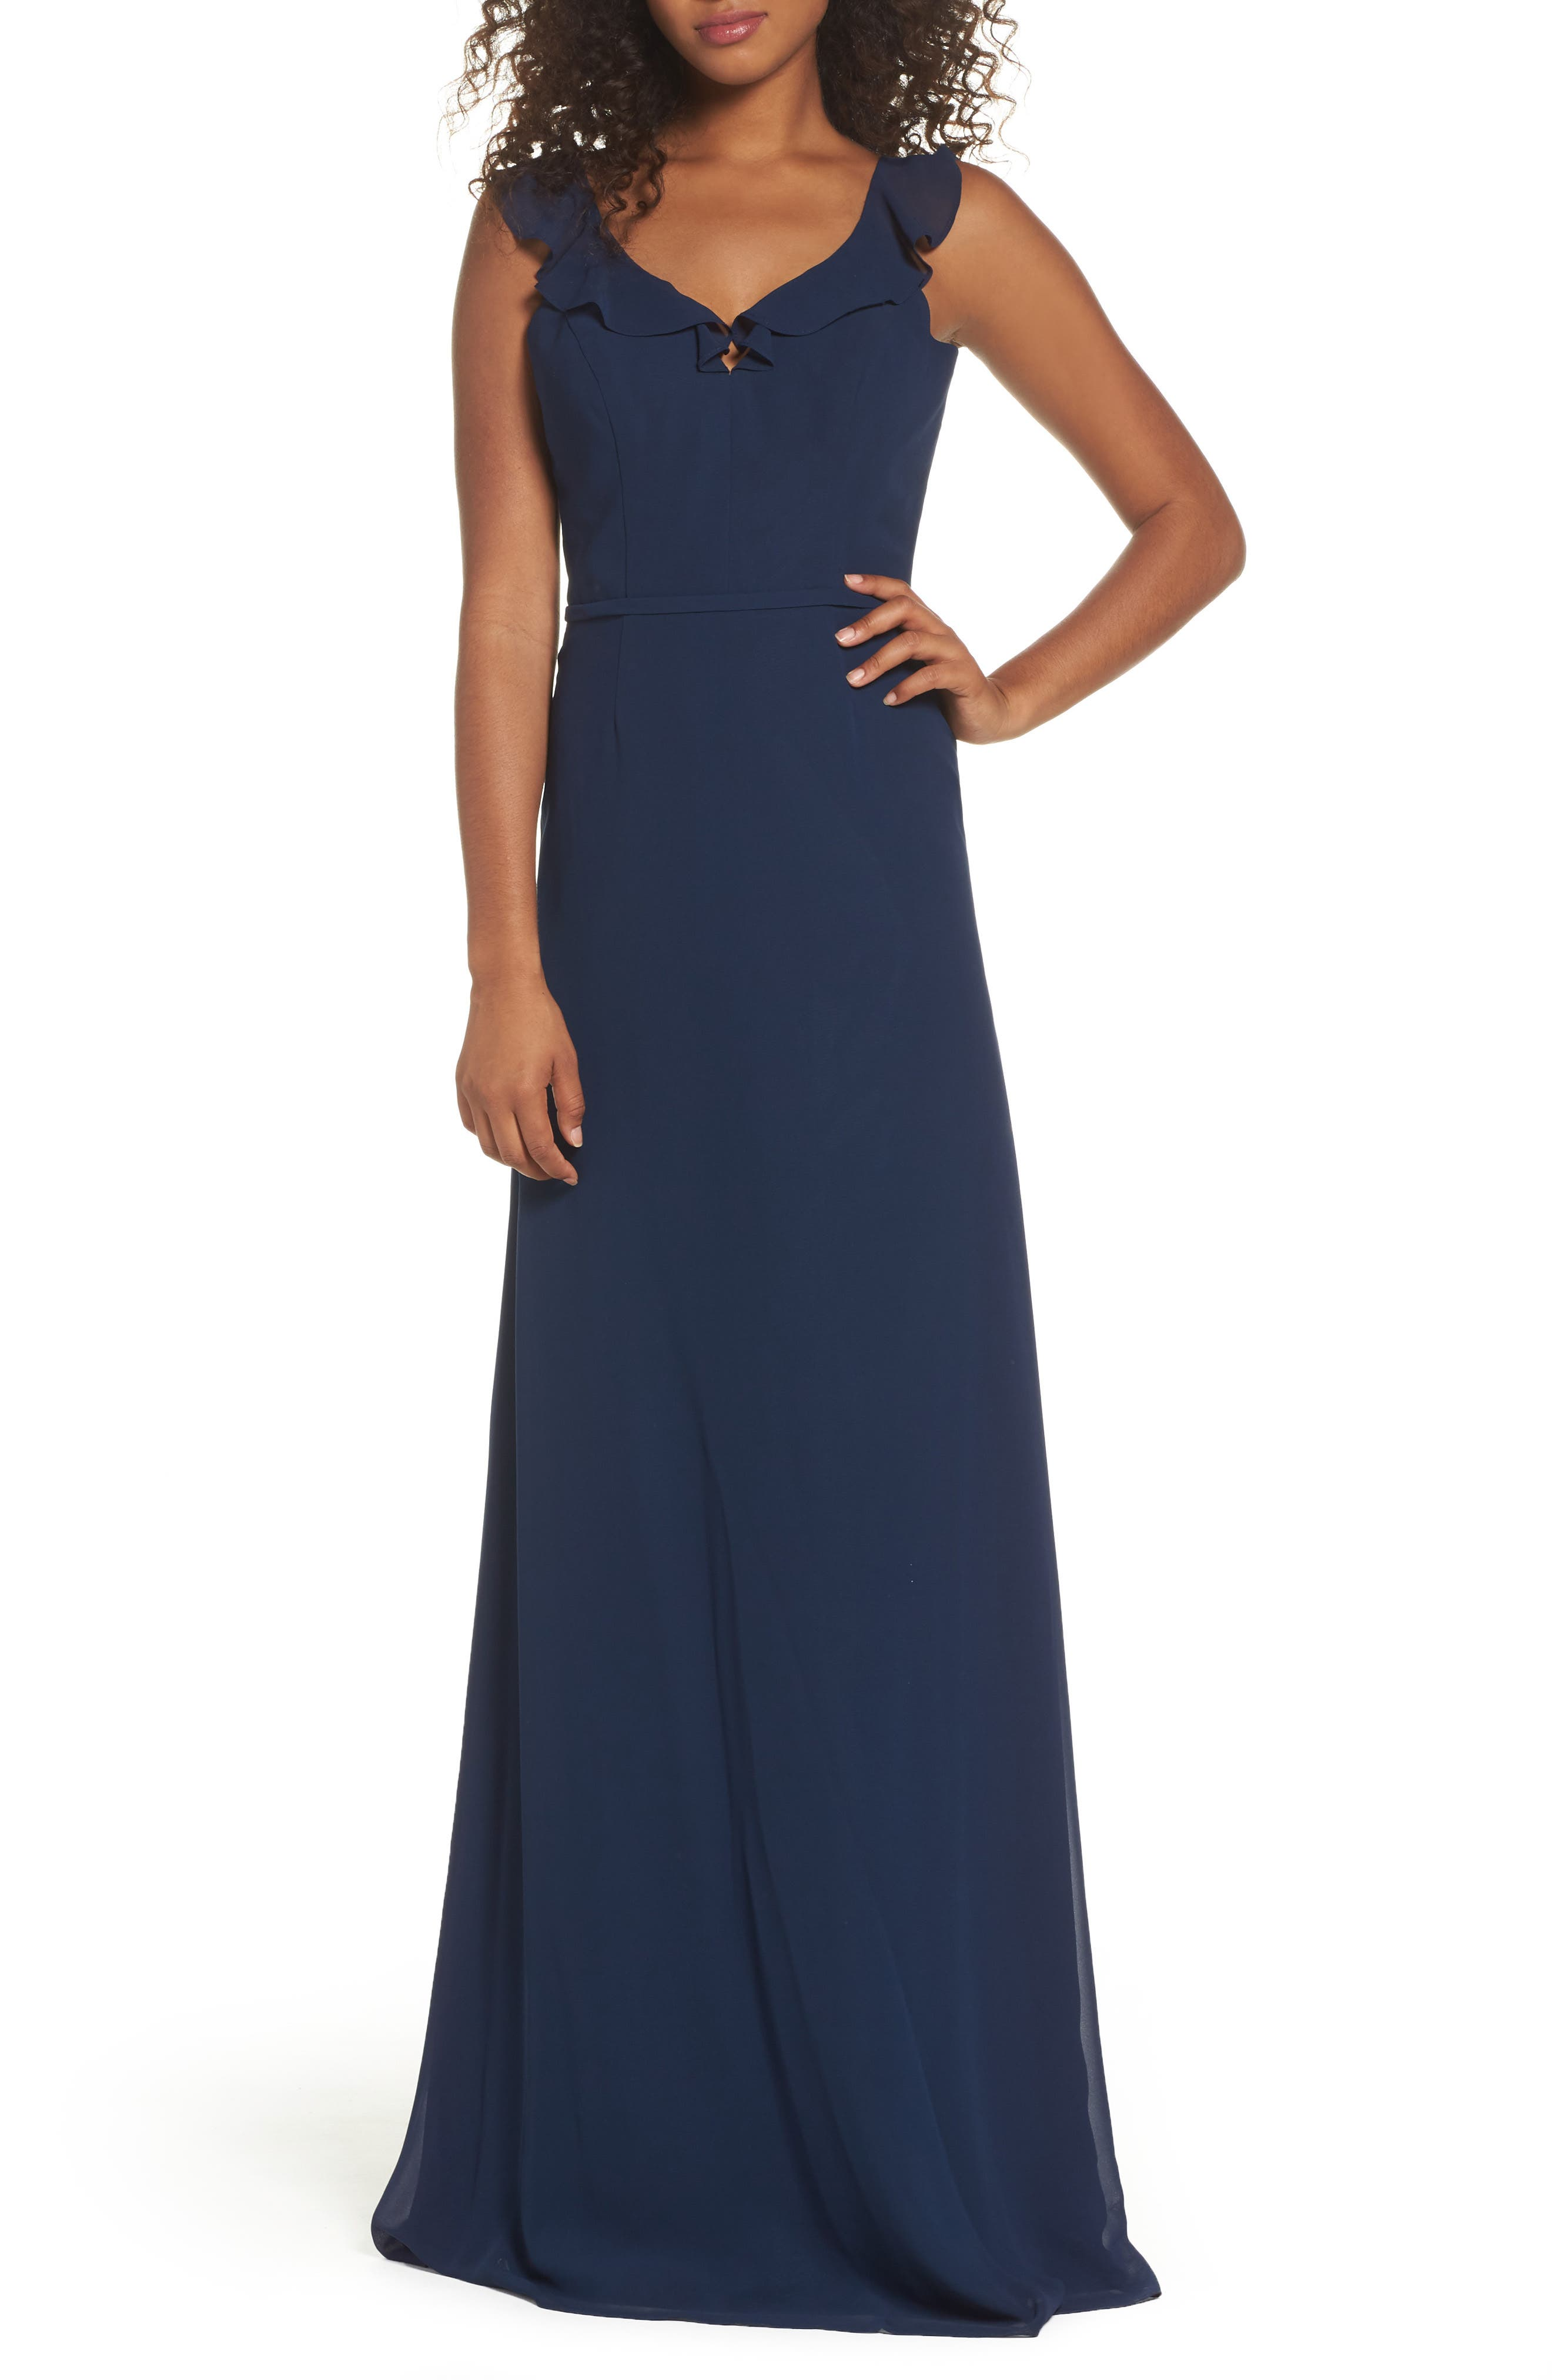 Alternate Image 1 Selected - Monique Lhuillier Bridesmaids Keira Backless Chiffon Gown